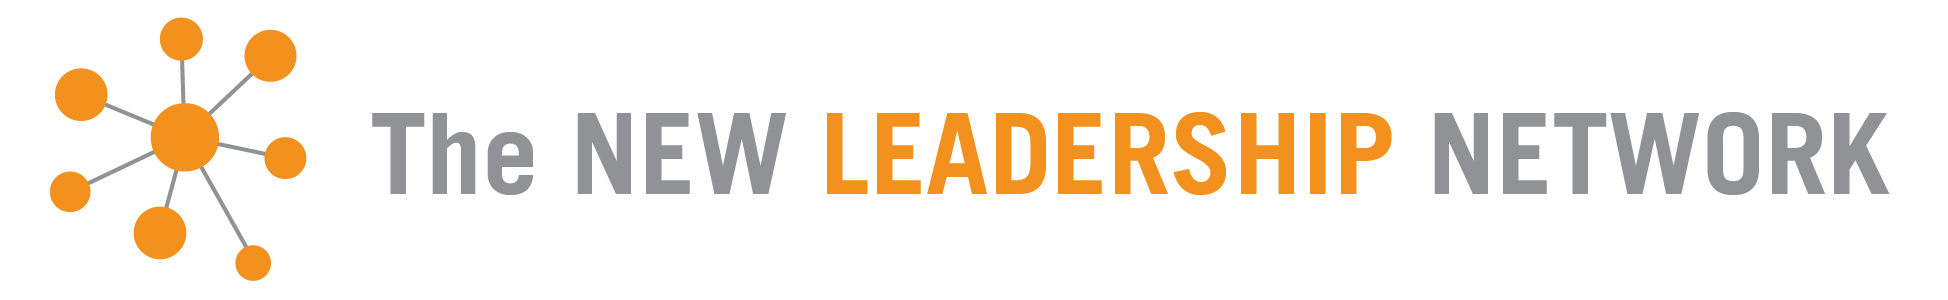 New Leadership Network